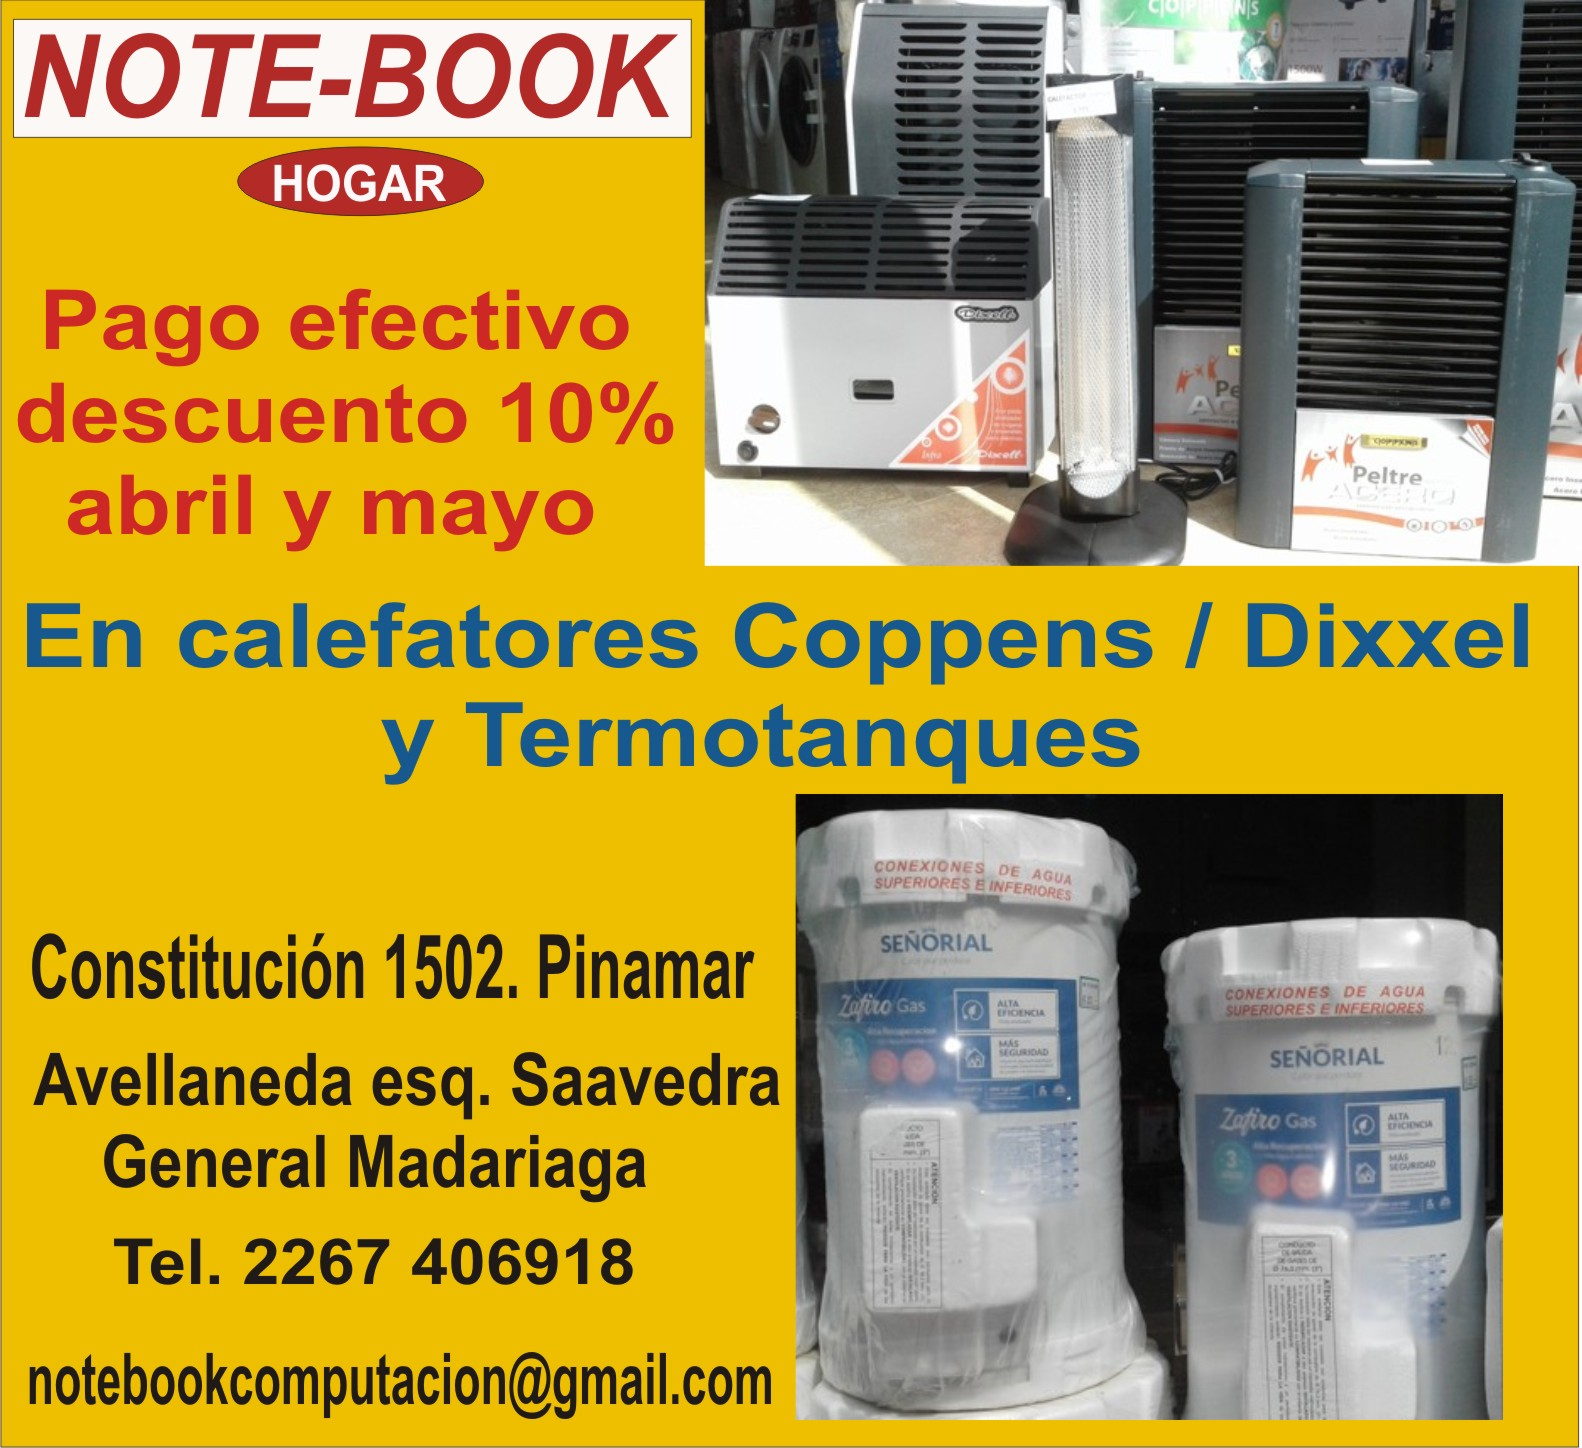 NOTE-BOOK. Calefactores y termotanques